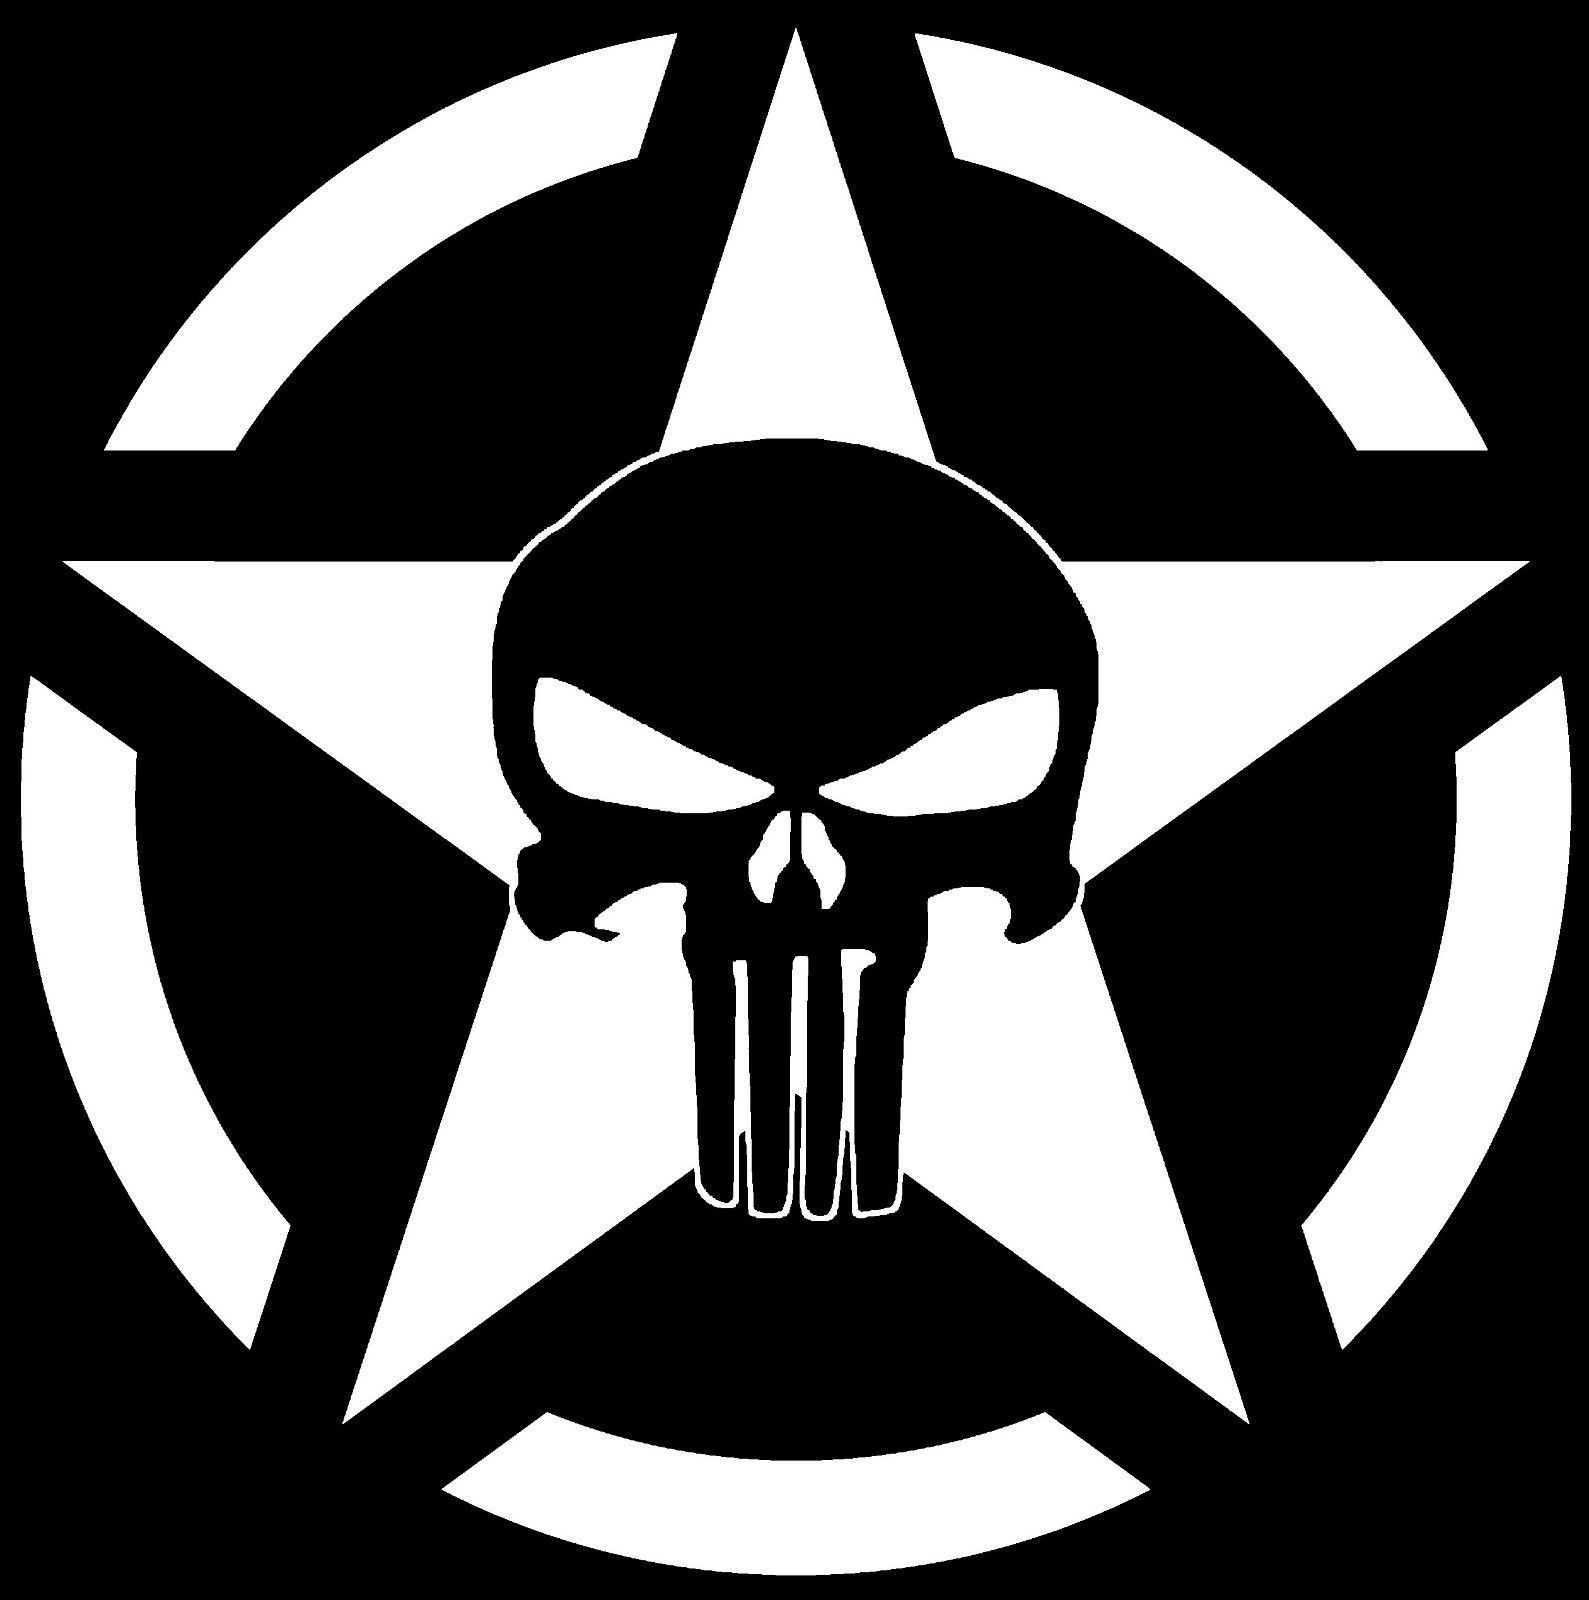 Military star jeep punisher skull decal vinyl sticker wrangler rubicon xj army ebay